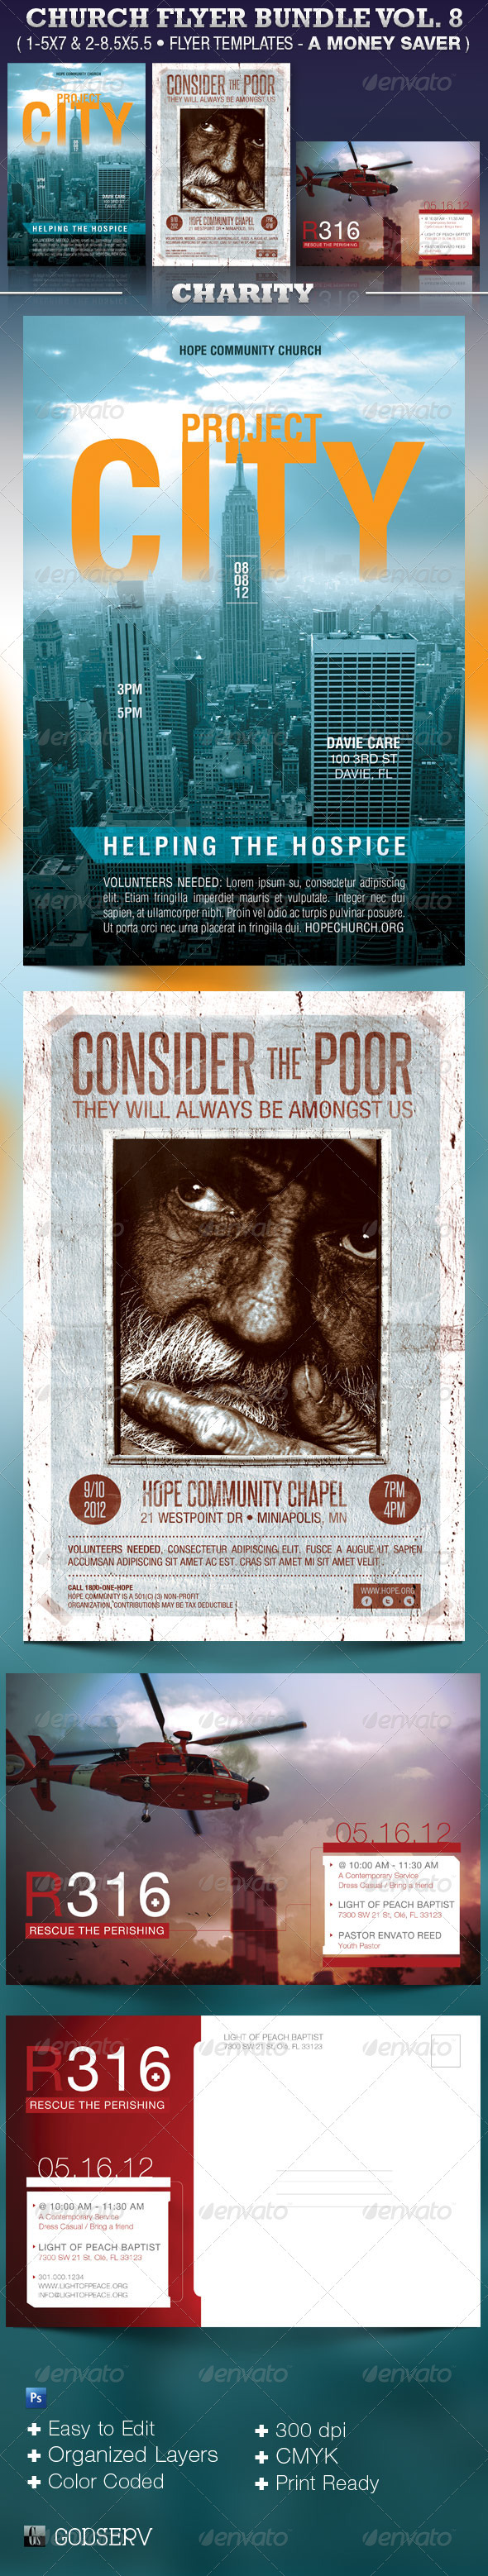 Church Flyer Template Bundle Vol 8 - Charity - Church Flyers